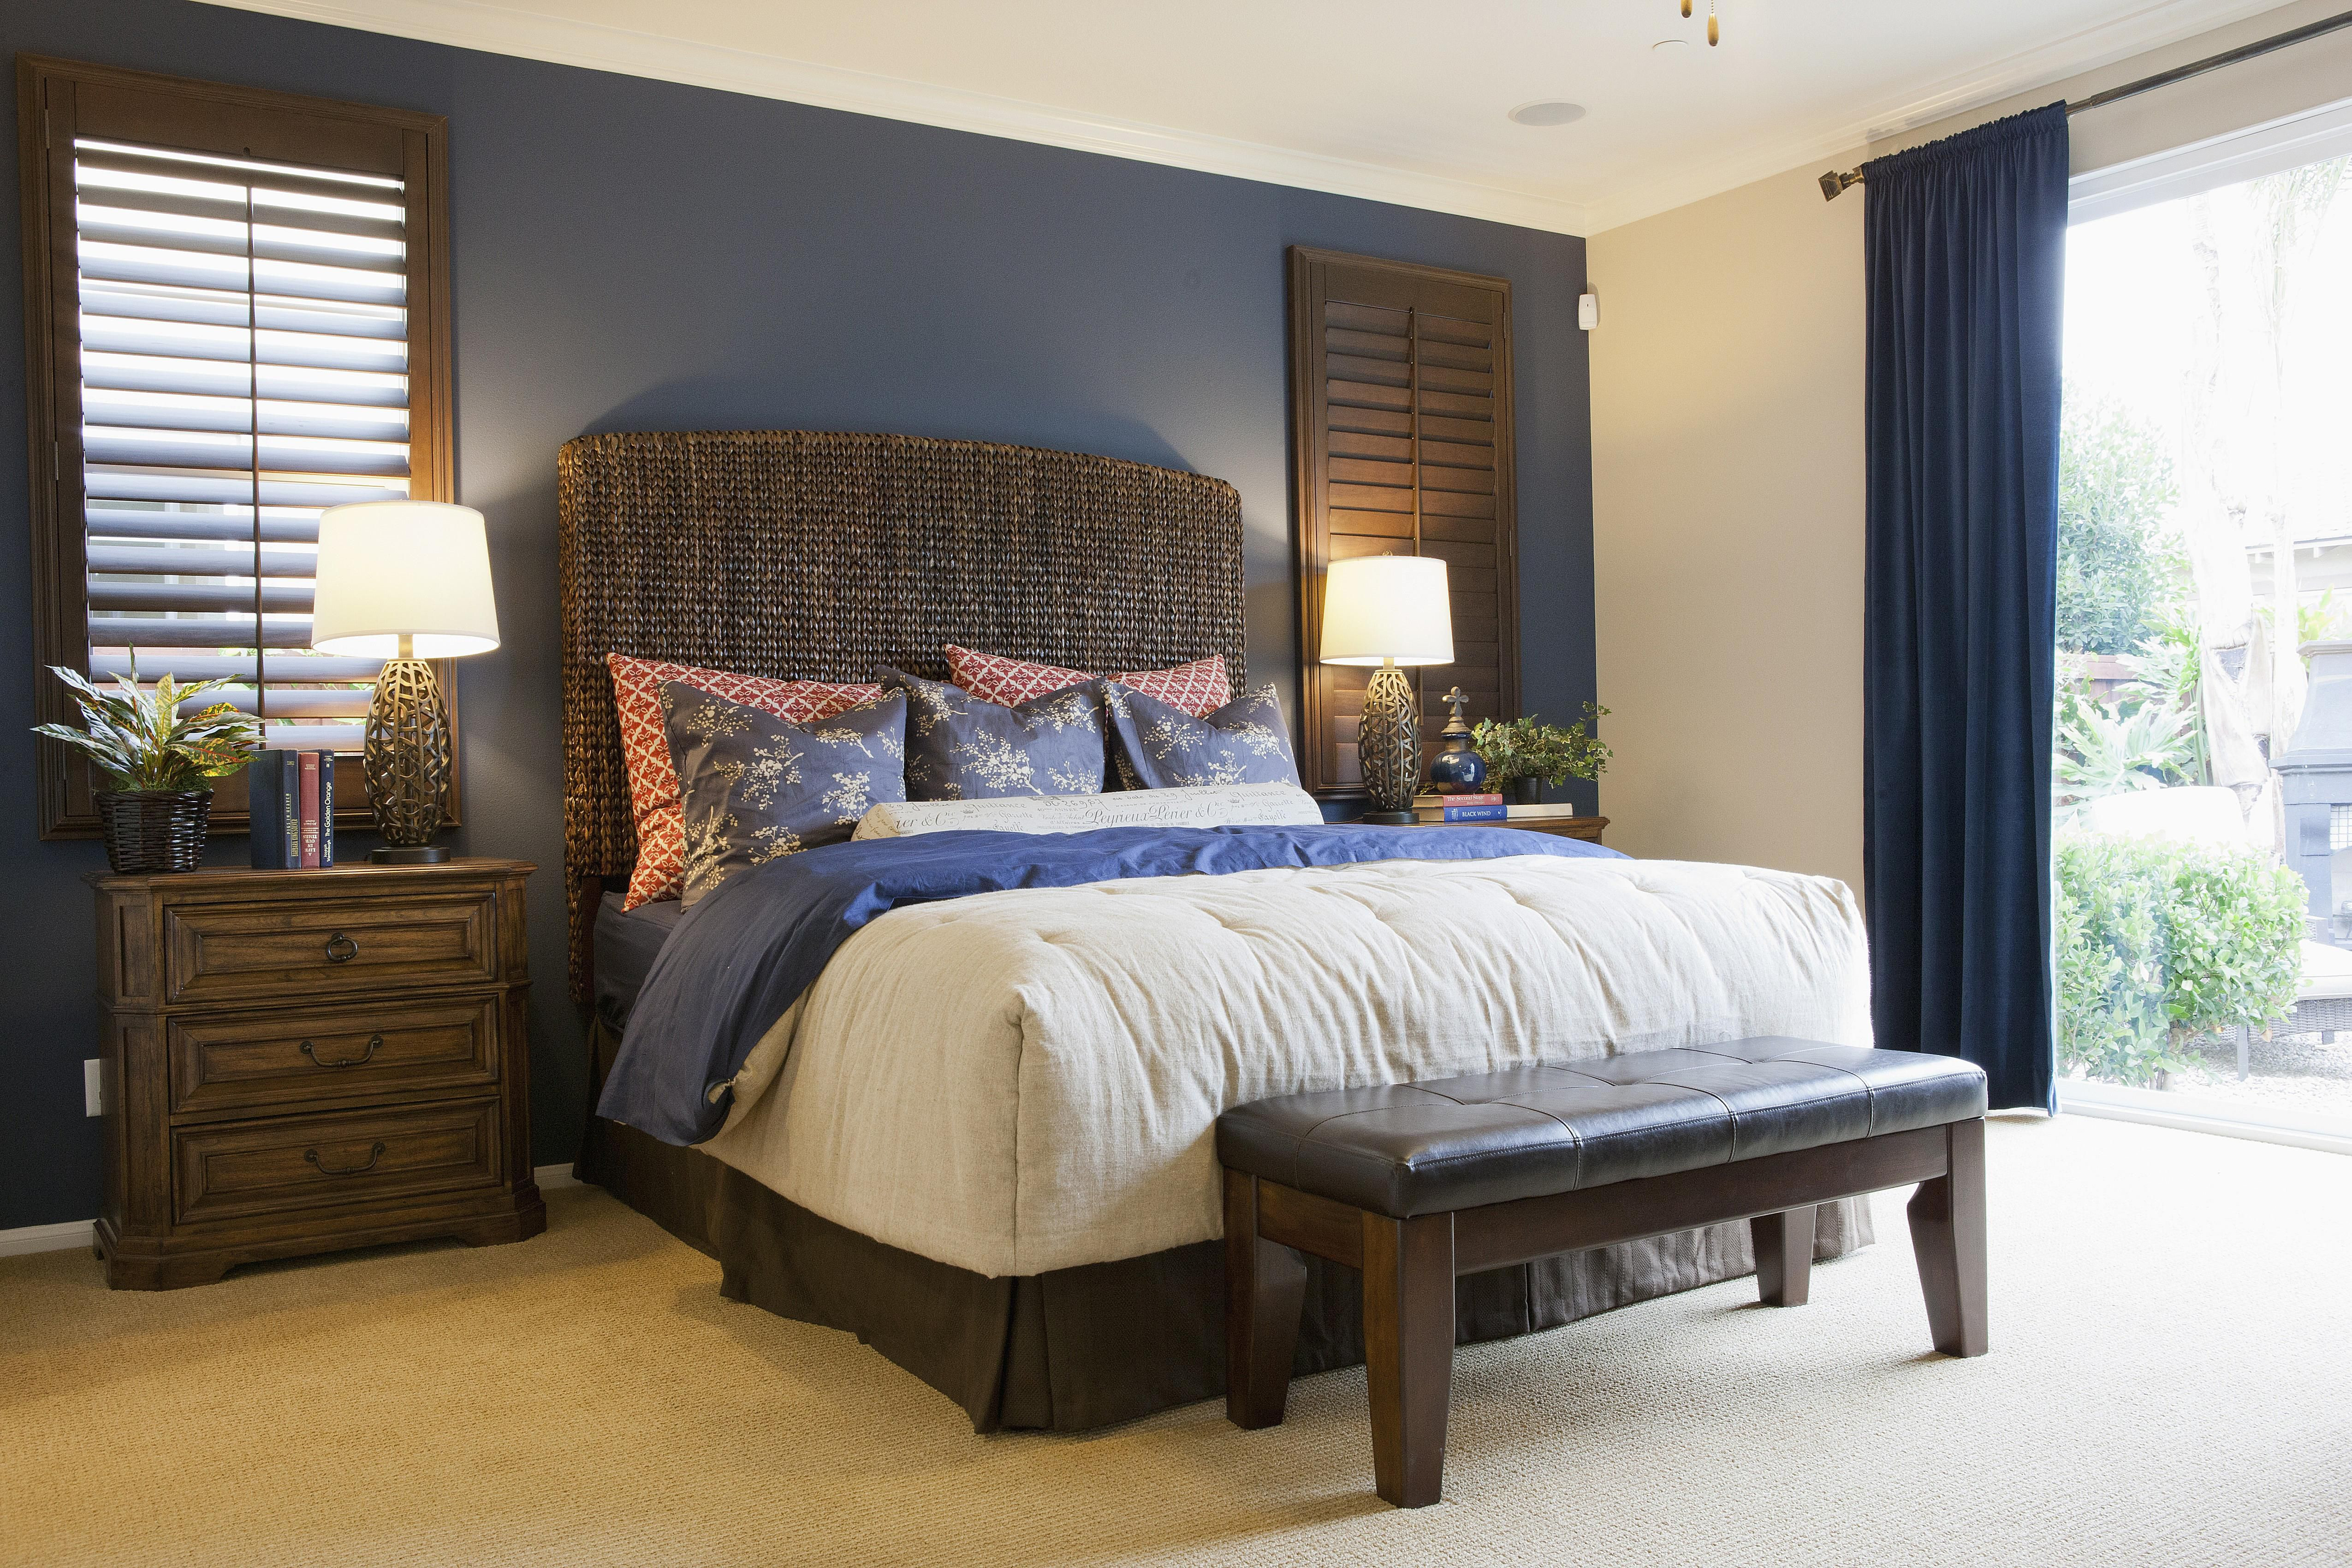 Best ideas about Rooms With Accent Walls . Save or Pin How to Choose an Accent Wall and Color in a Bedroom Now.